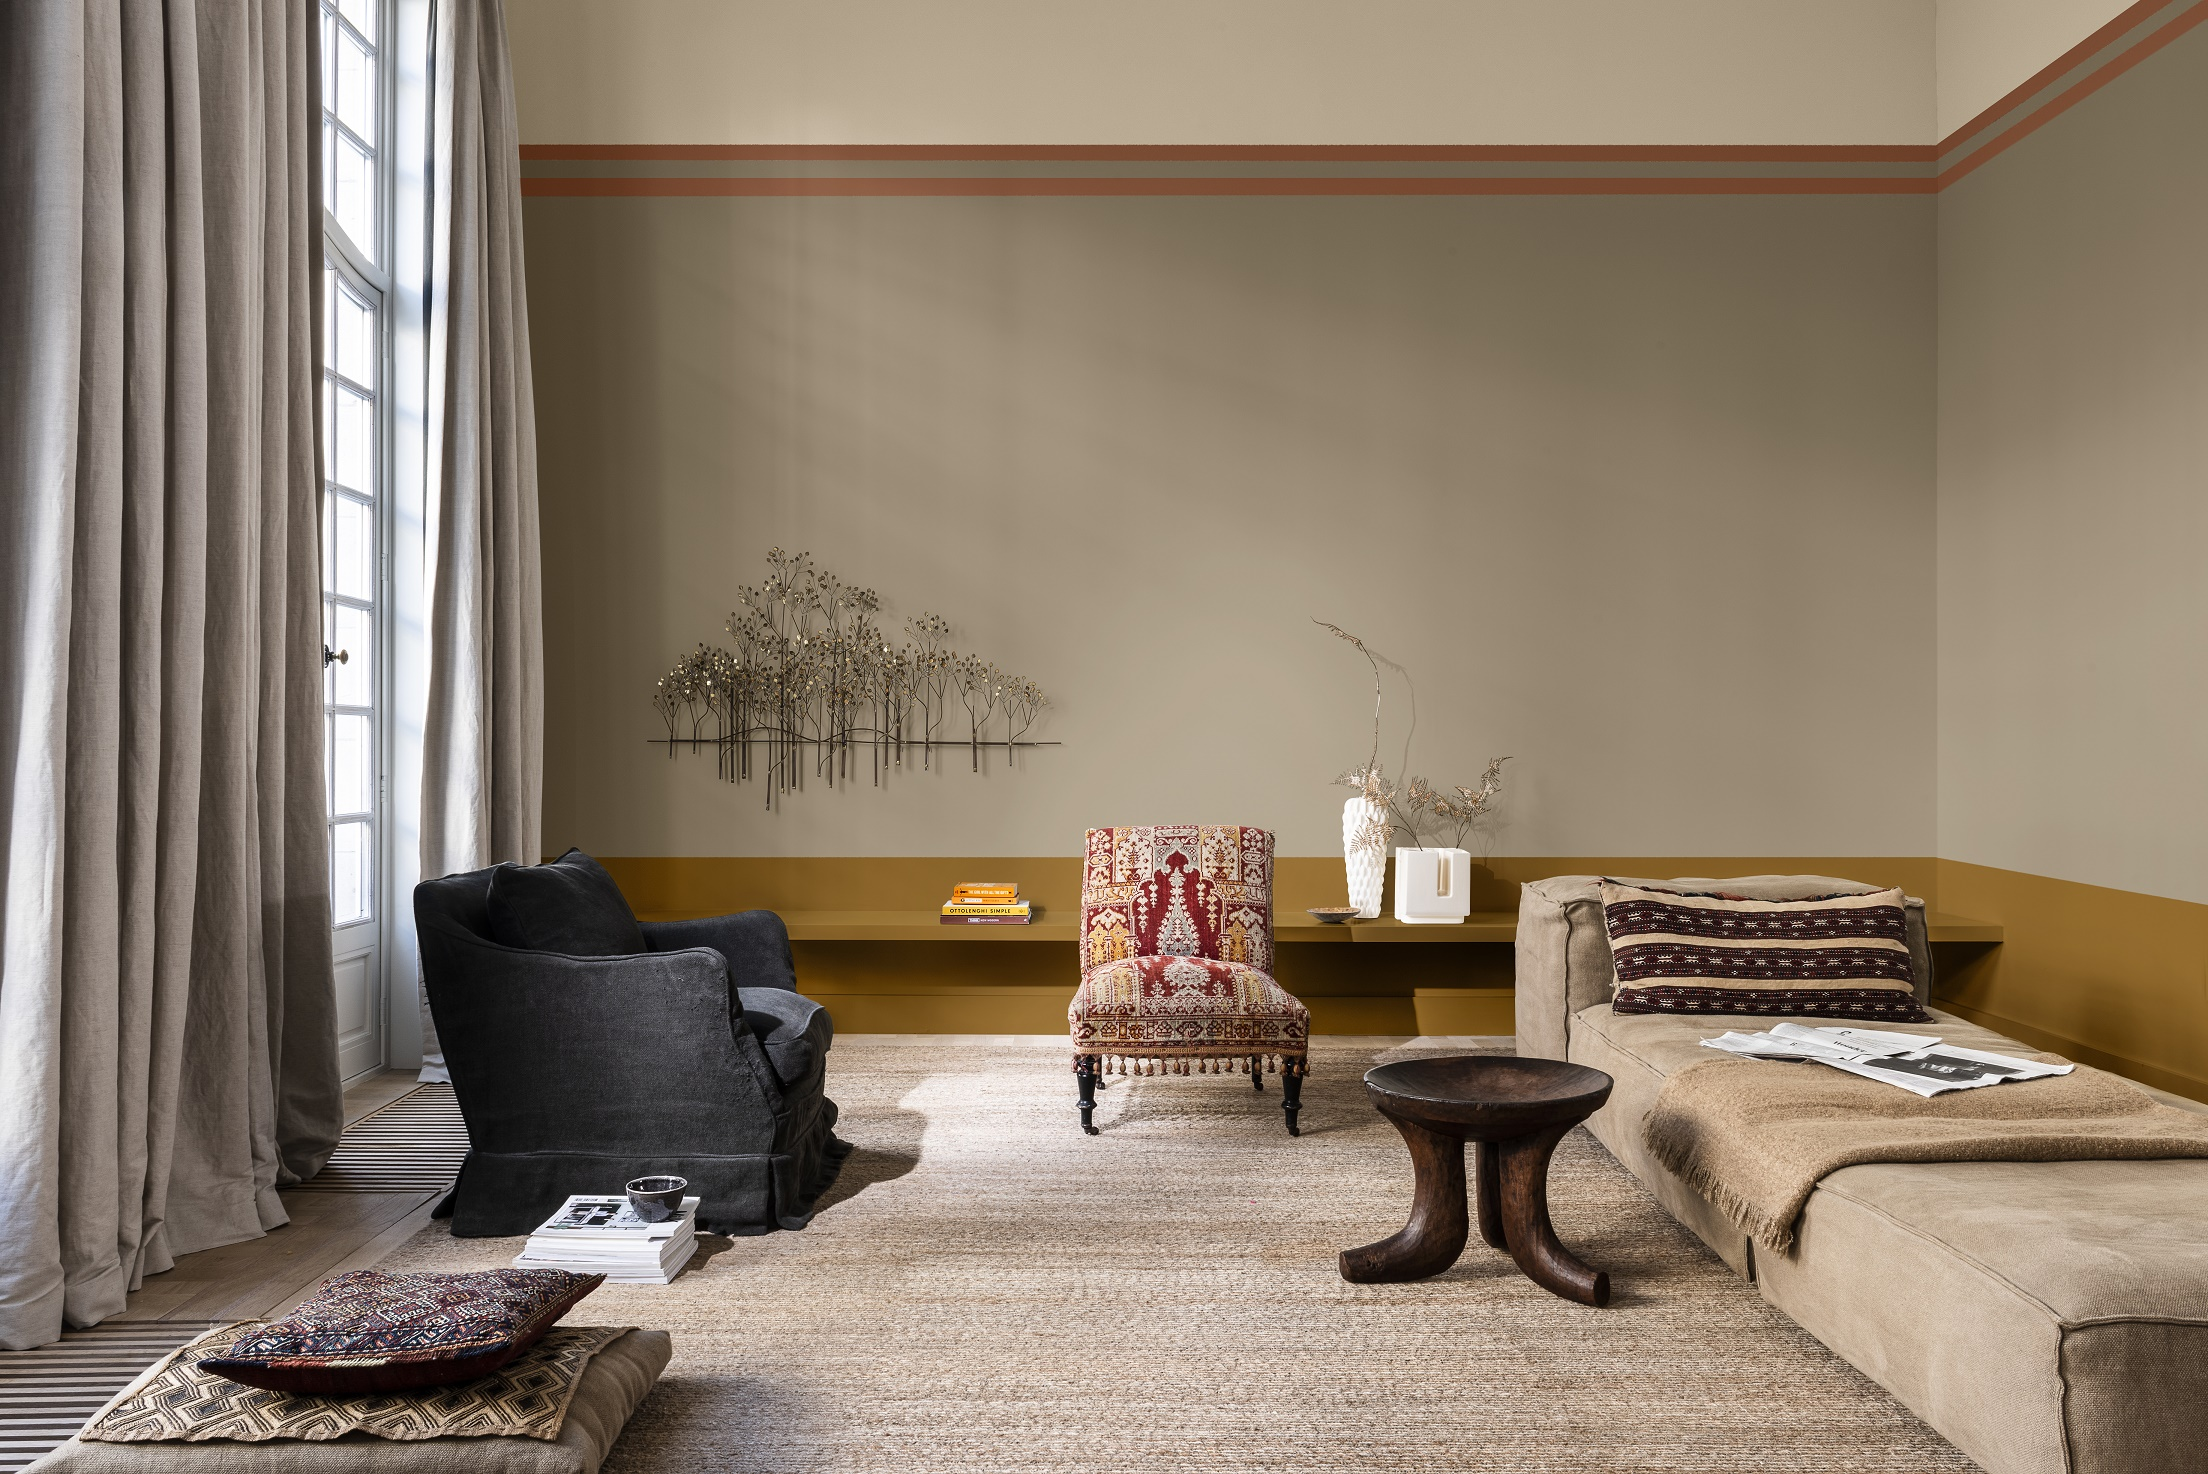 dulux-colour-futures-colour-of-the-year-2021-timeless-colors-livingroom-inspiration-global-85p.jpg